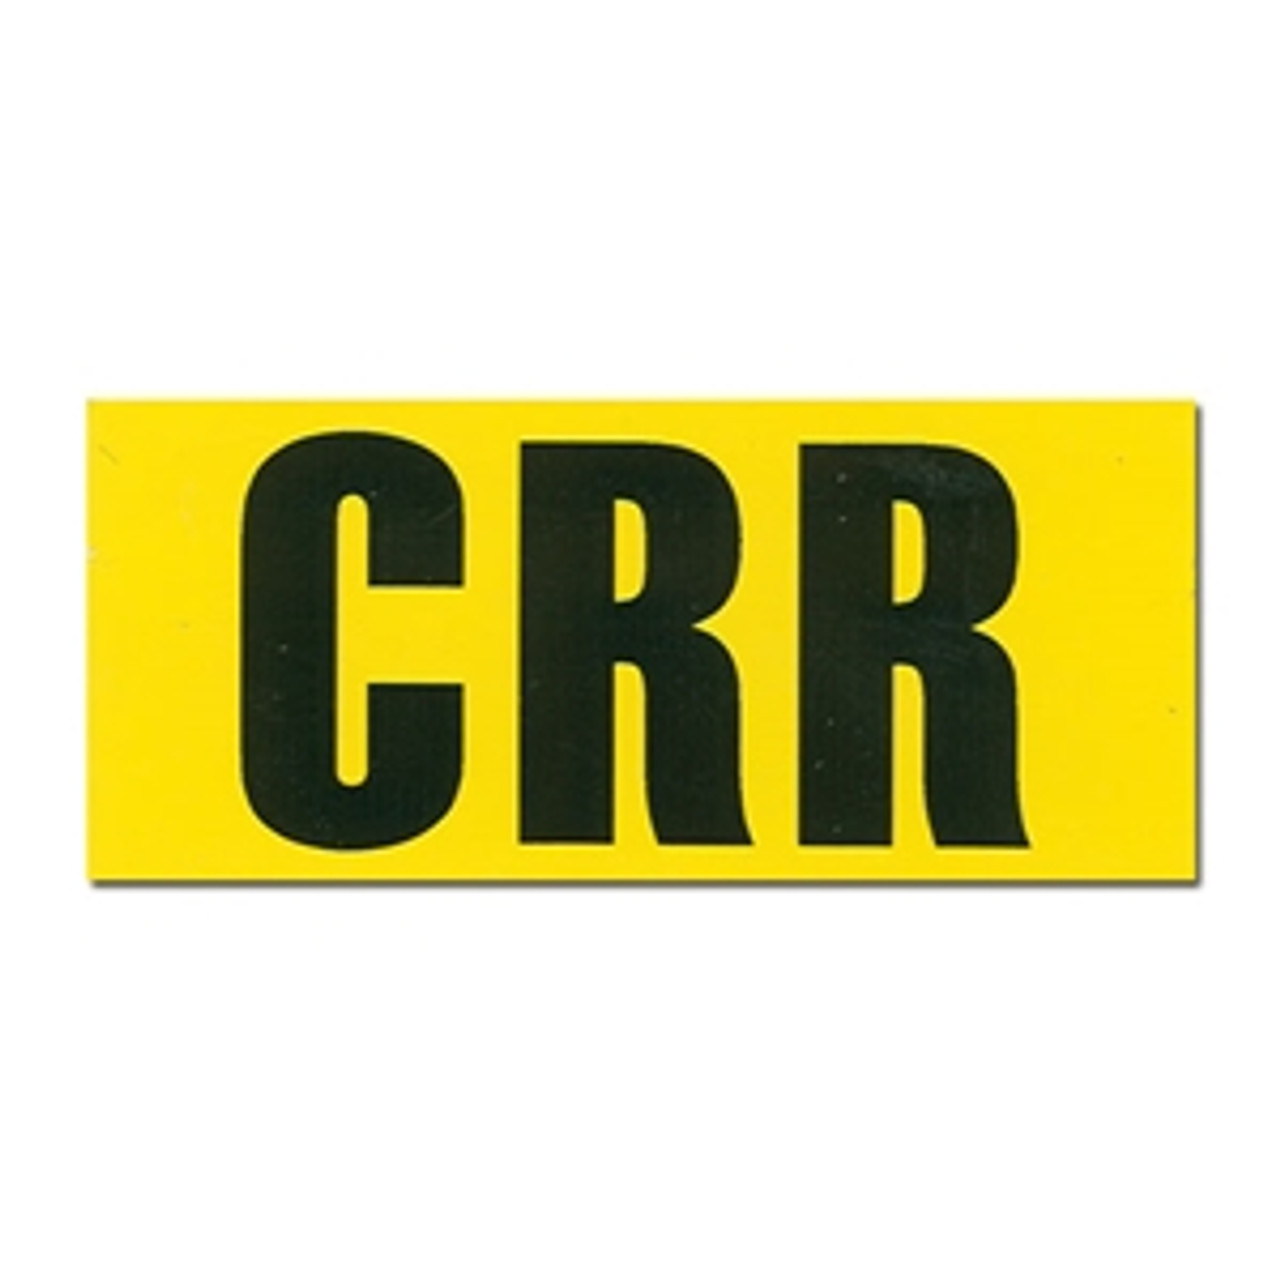 Chevelle or El Camino CRR Decal